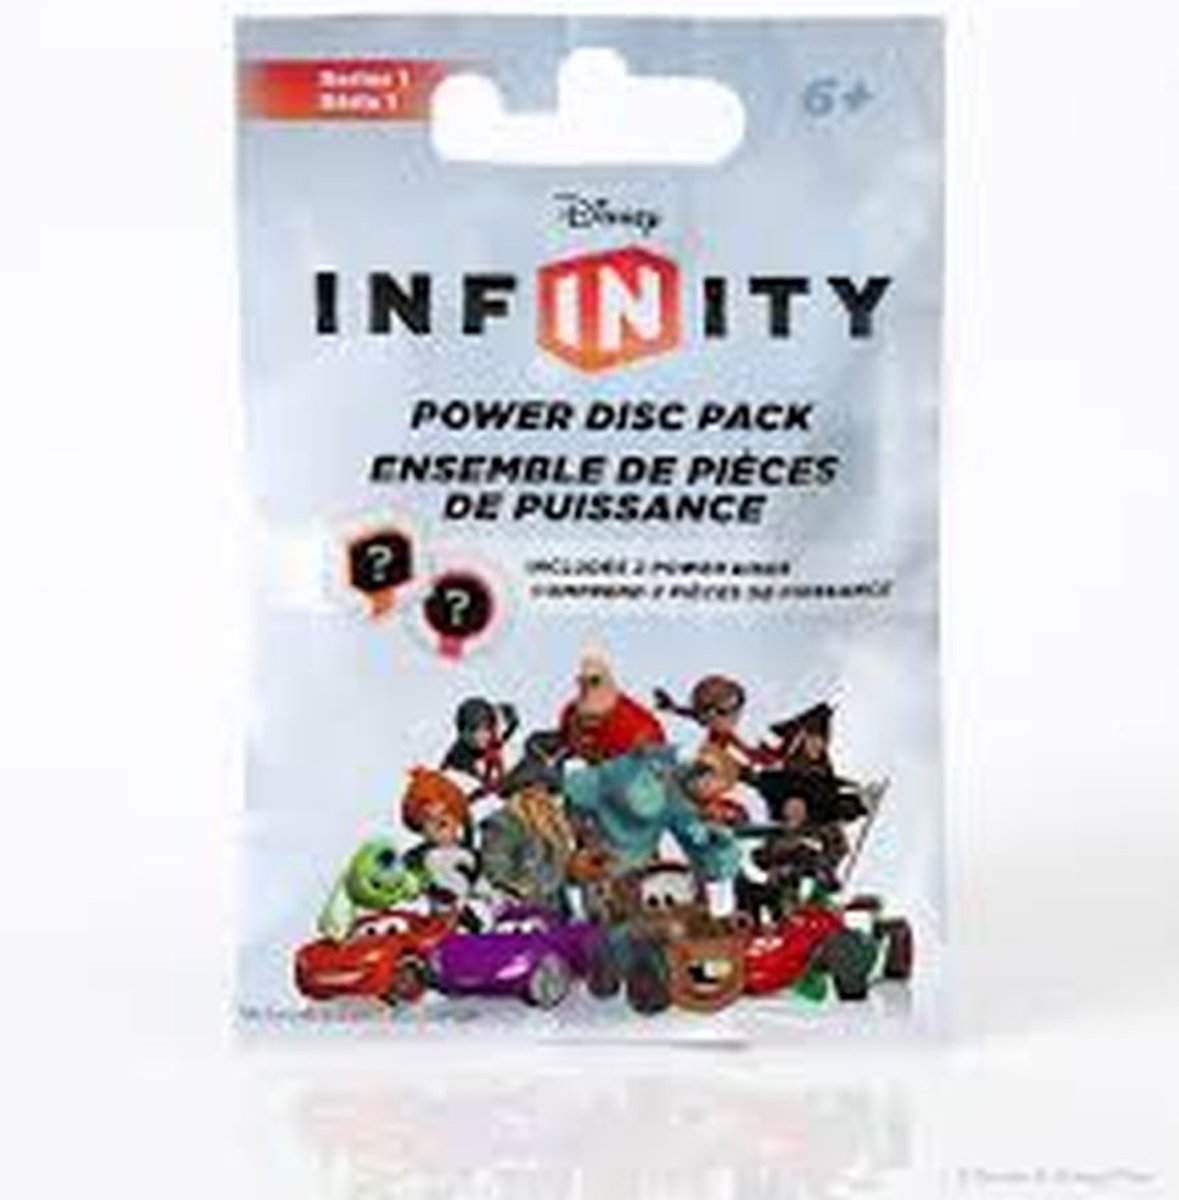 Infinity 2 Power Discs Pack Serie 3 3DS + Wii U + PS3 + Xbox 360